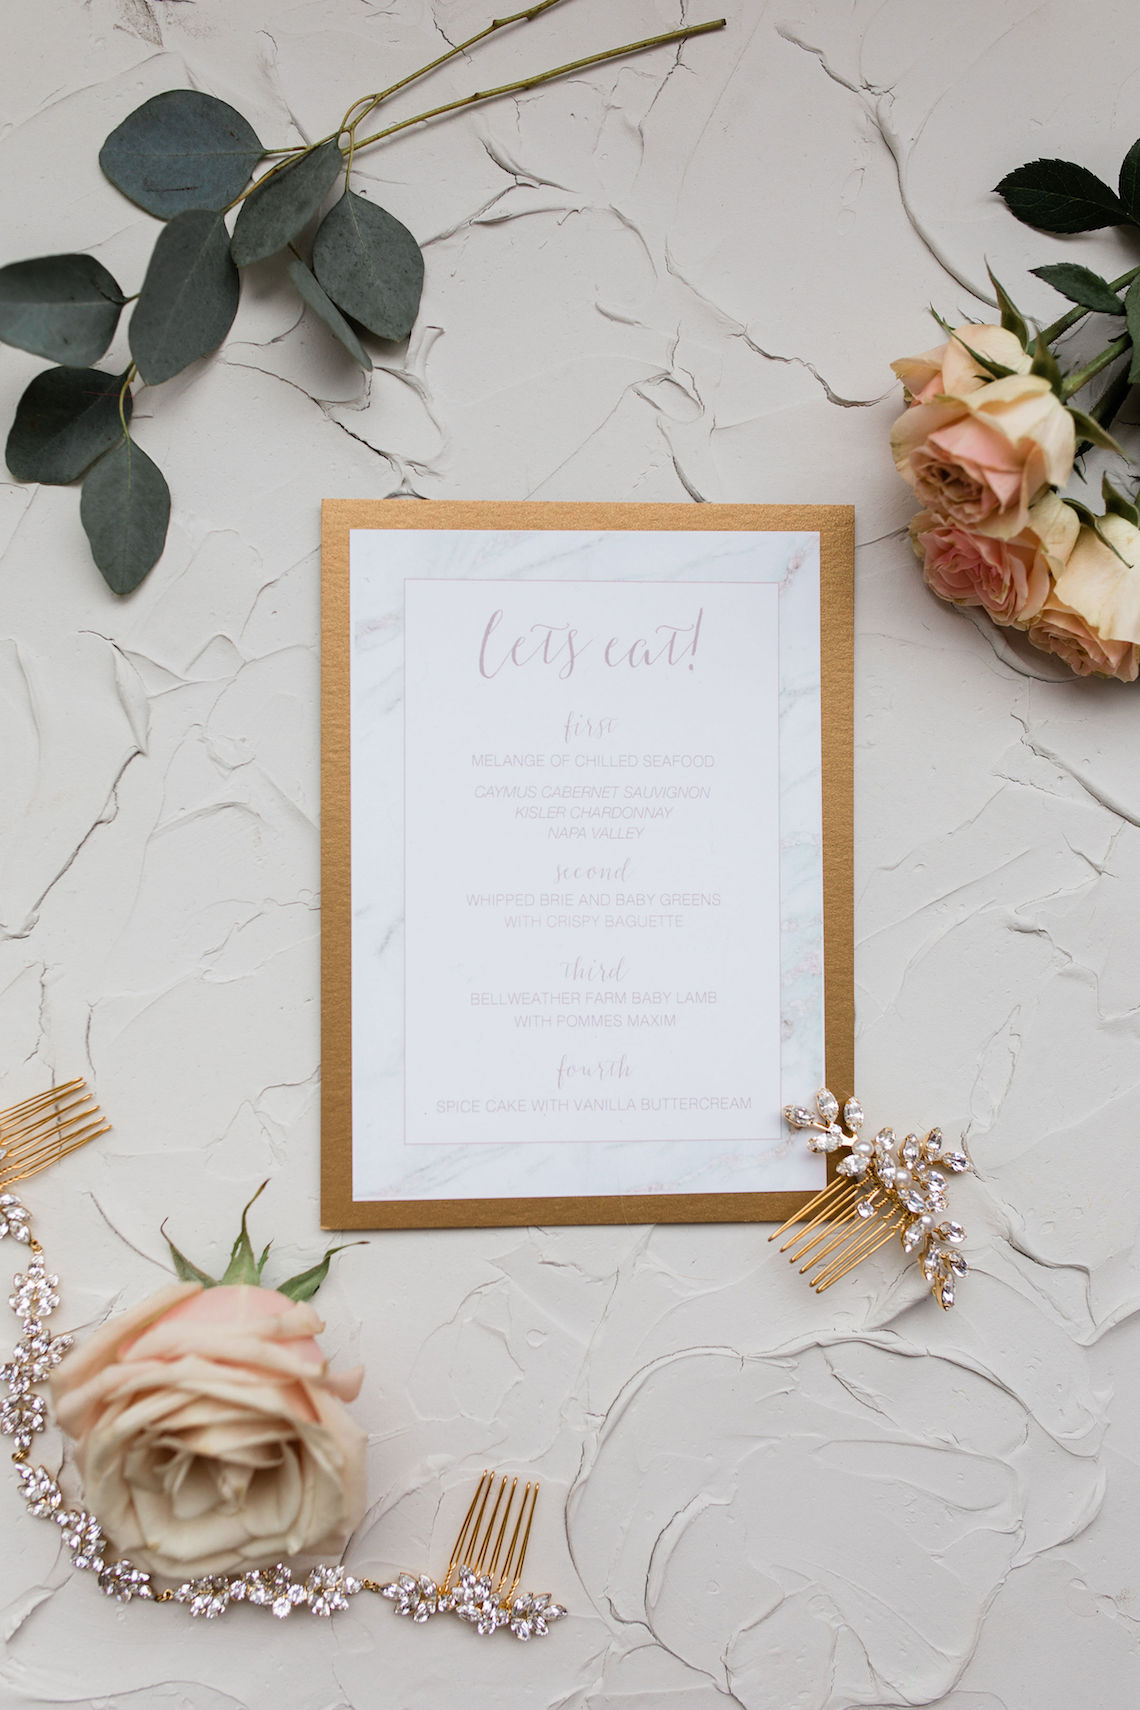 Adorable Loft Wedding Inspiration with a Cotton Candy Cart – Grey Garden Creative 41